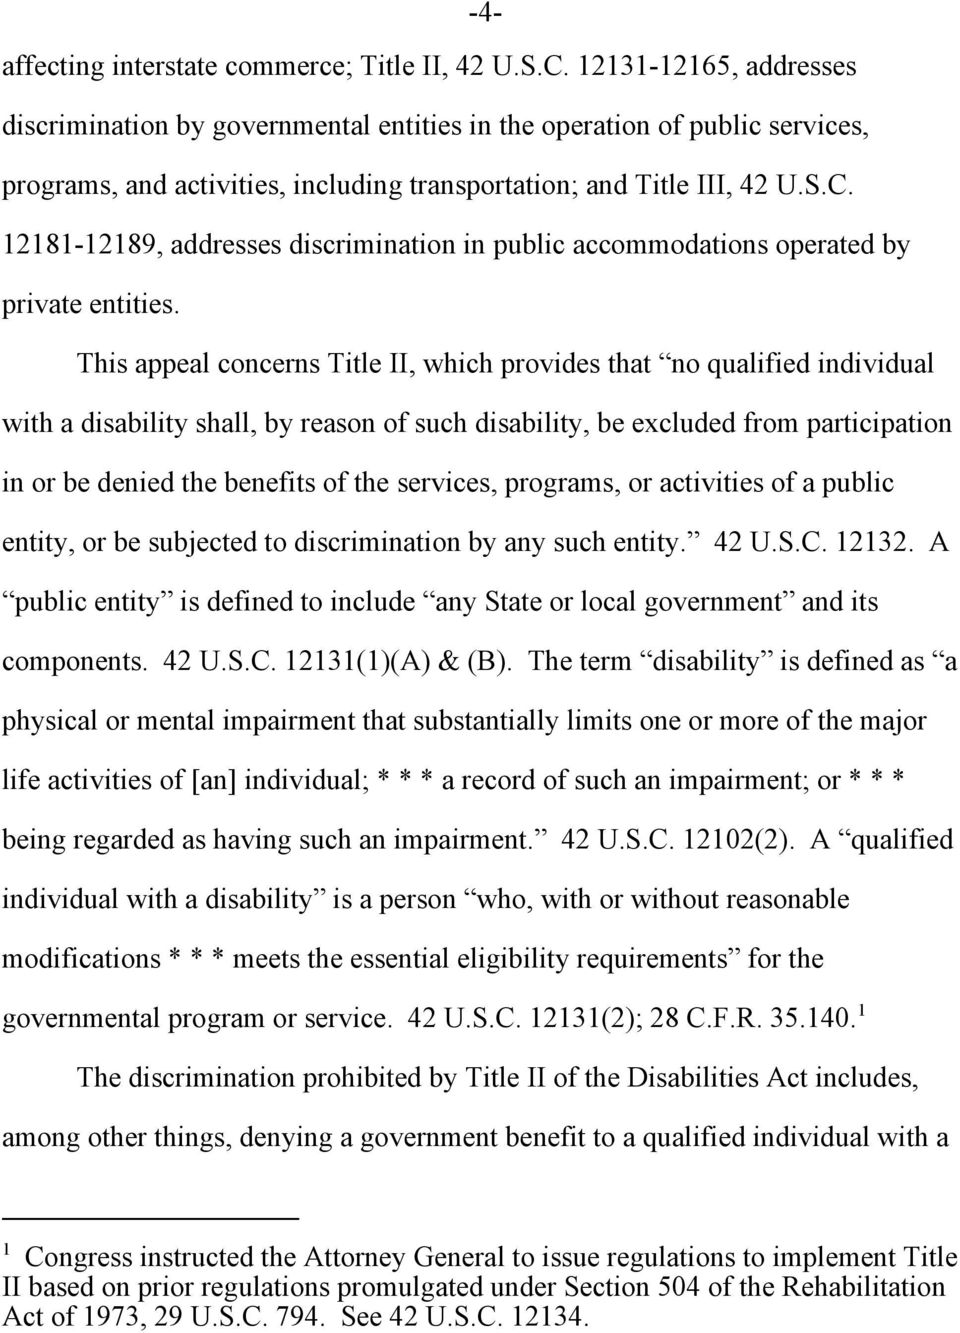 12181-12189, addresses discrimination in public accommodations operated by private entities.